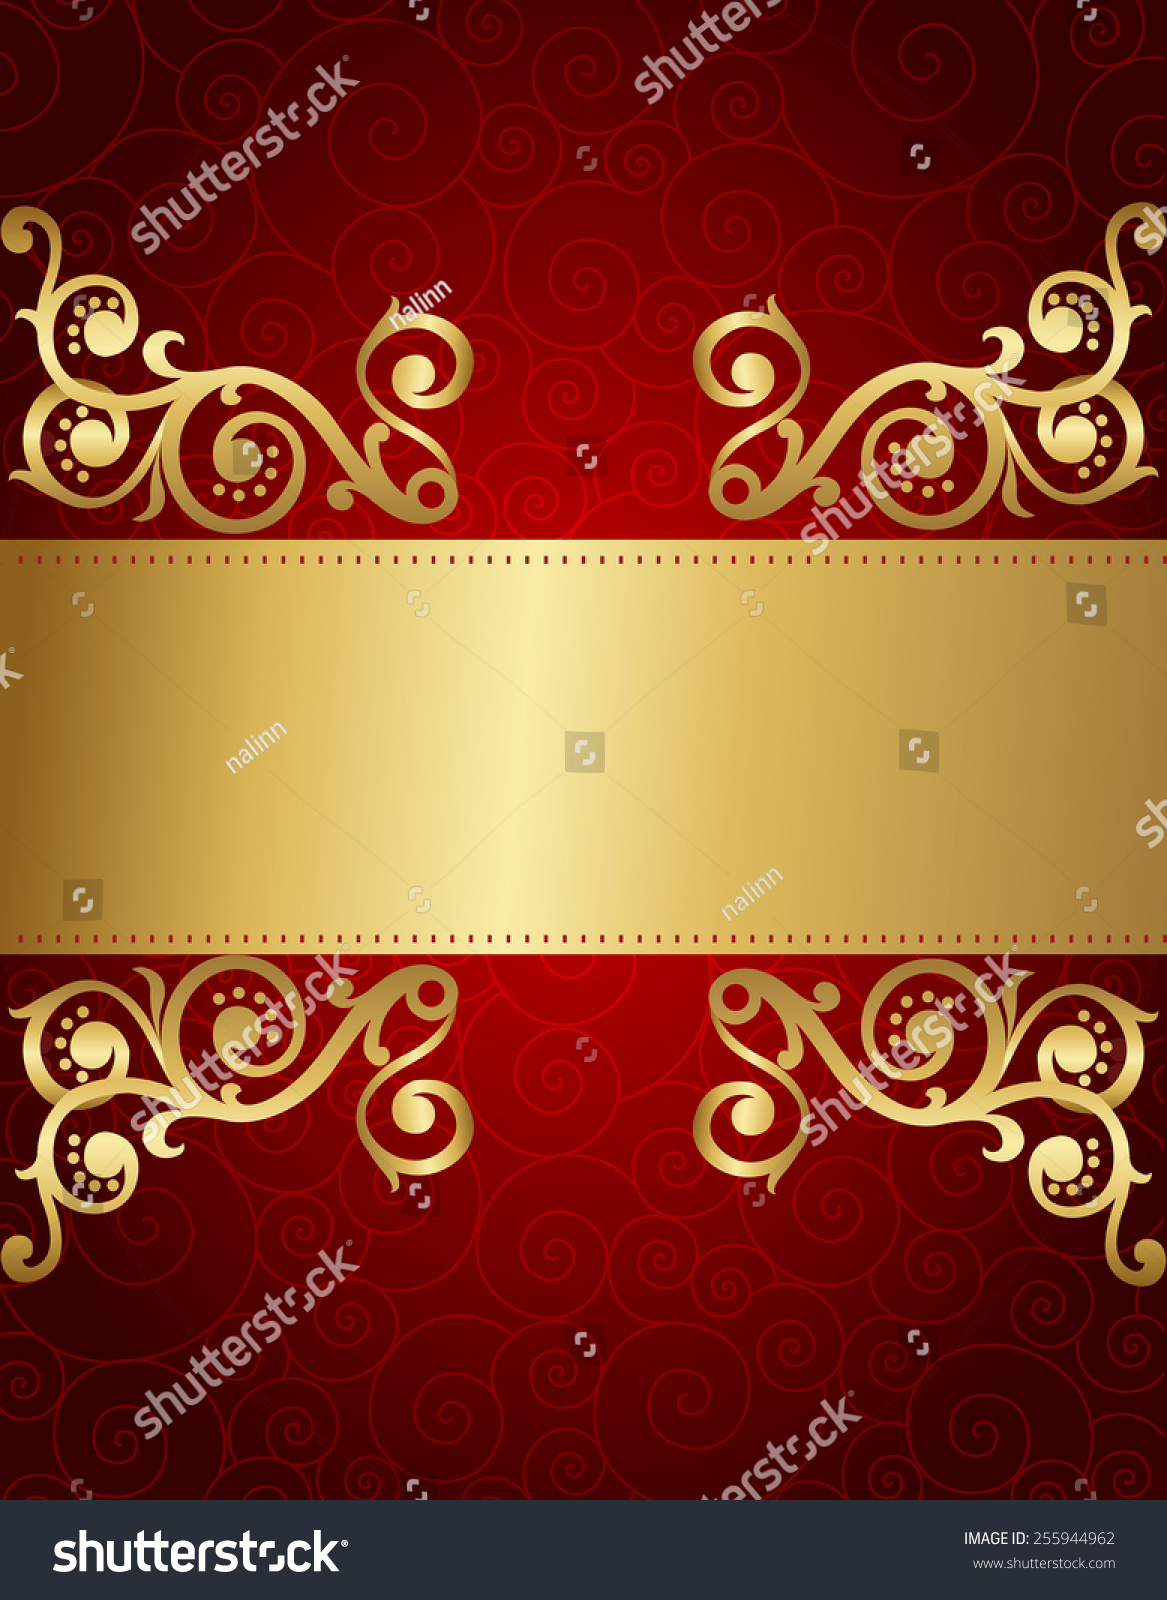 Elegant Red And Golden Decorative Background For Wedding Party Invitations